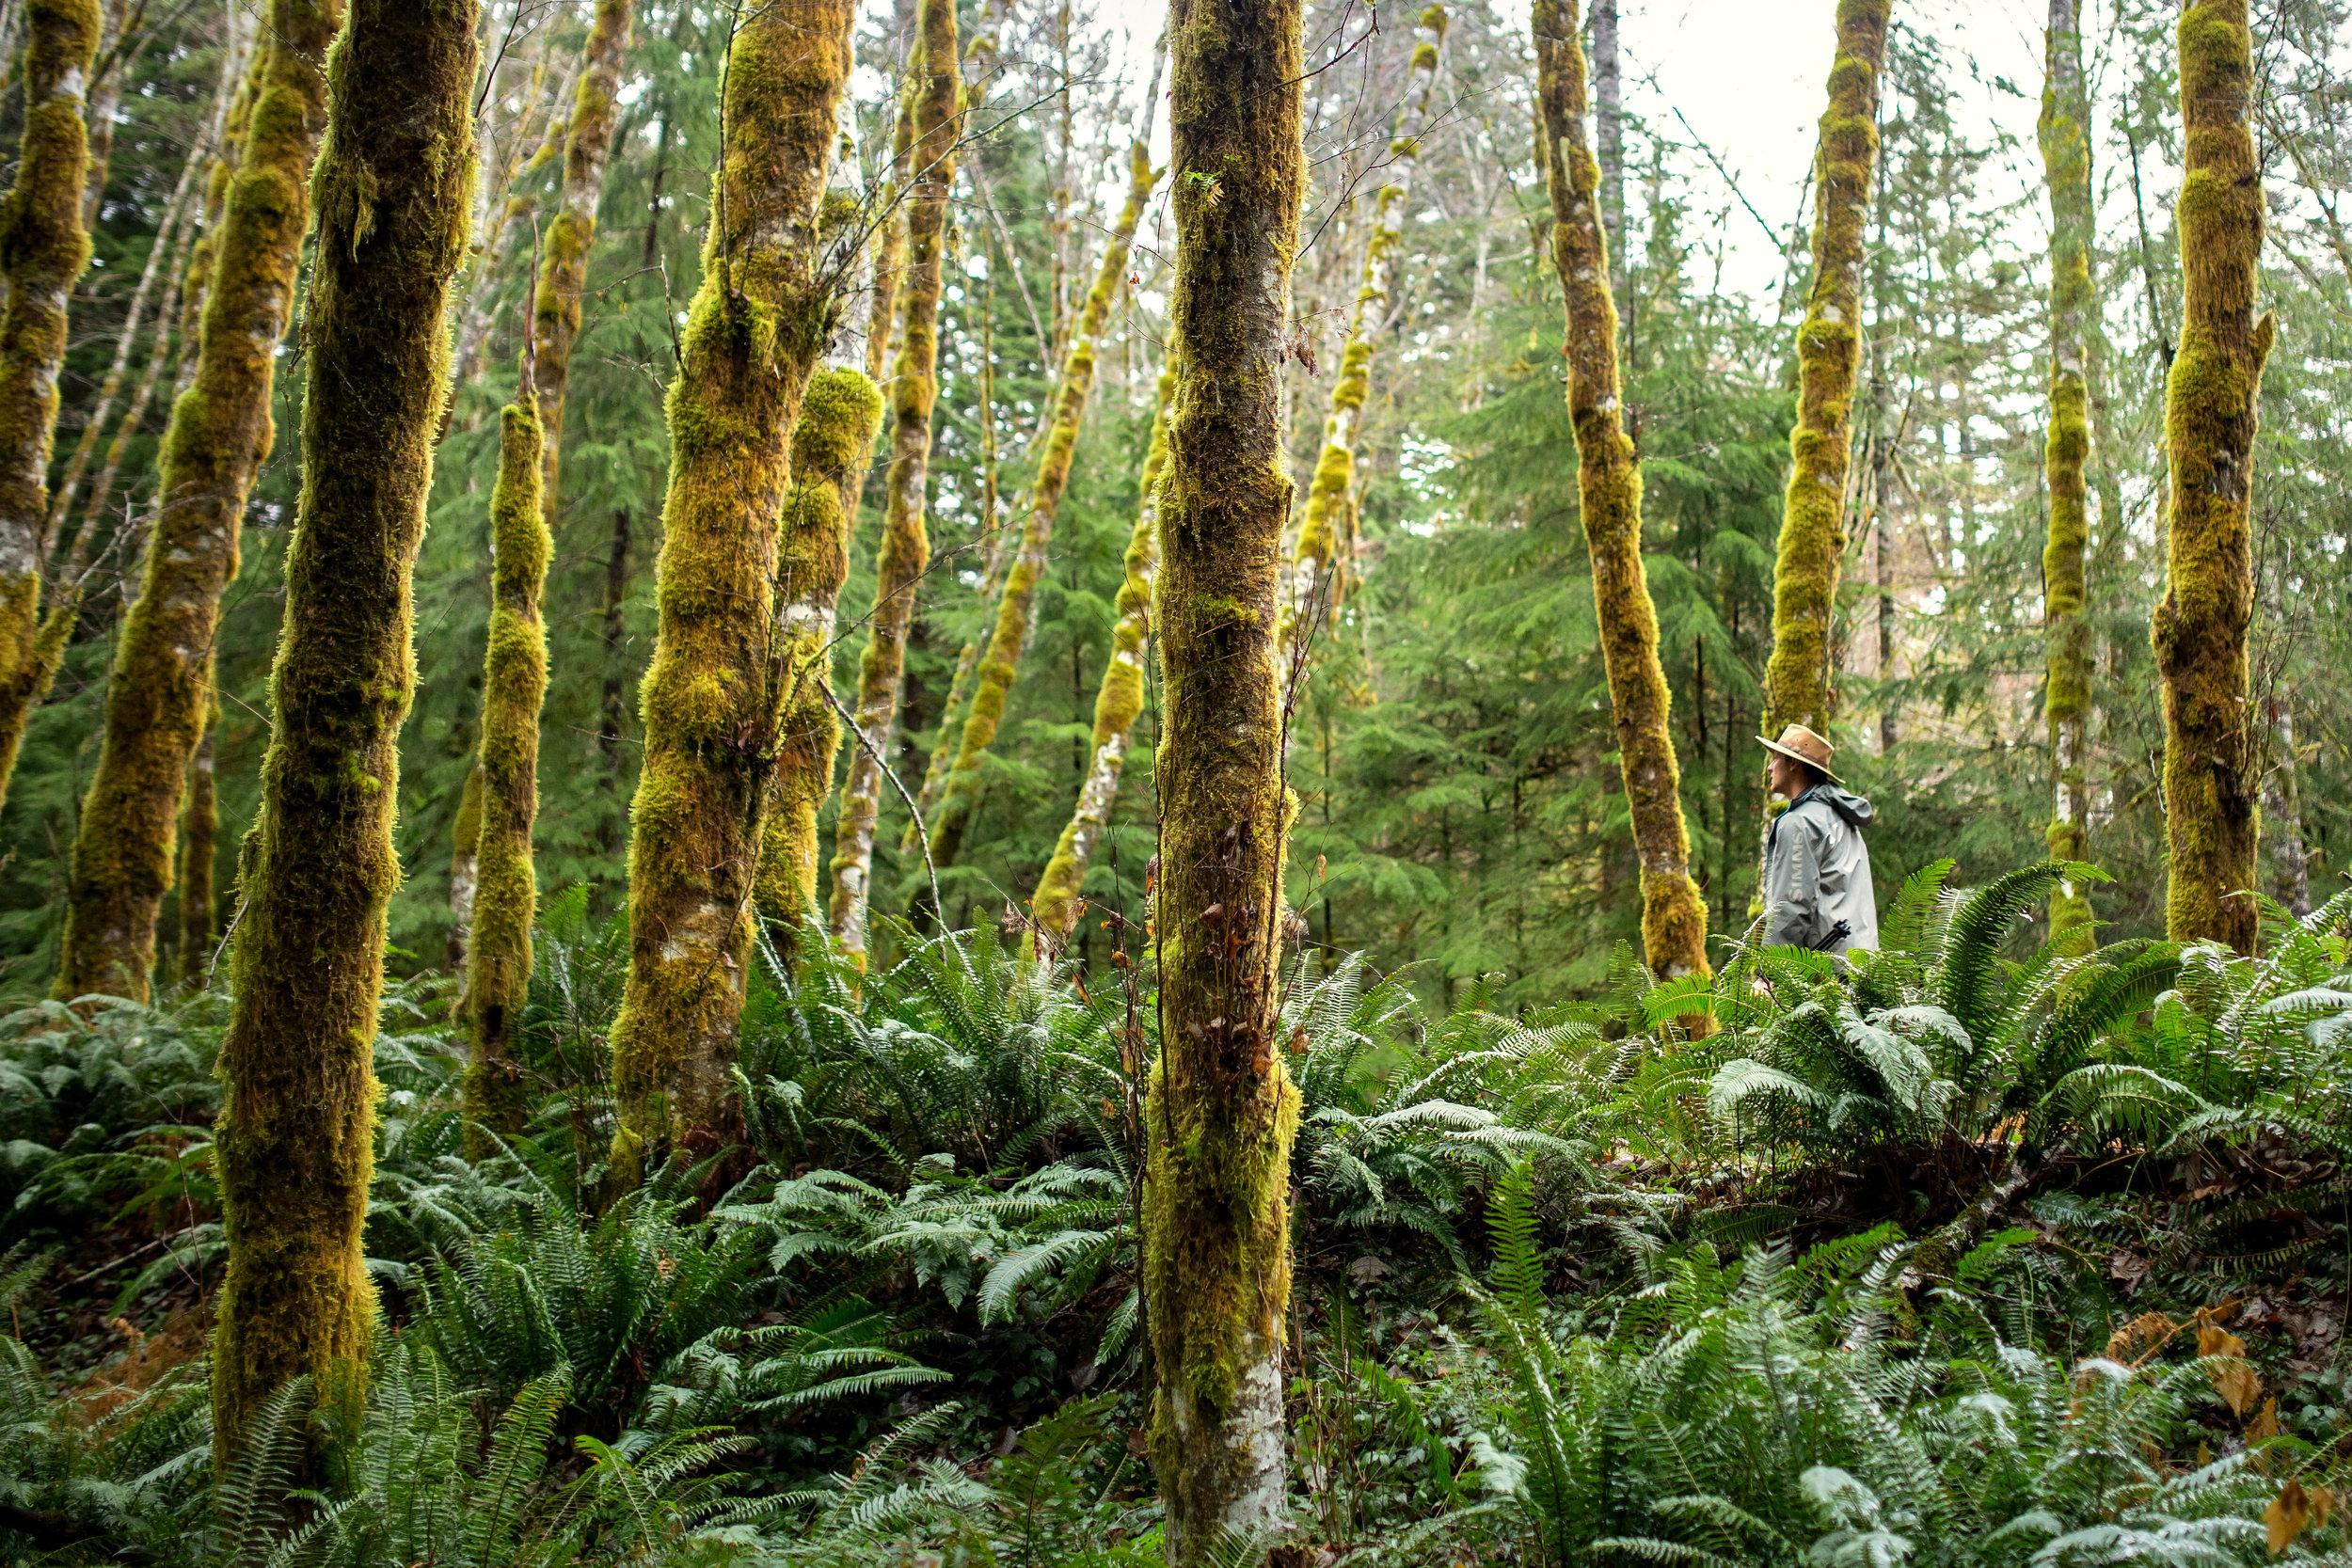 PNW-Ferns-SAved-for-Web-dkje.jpg